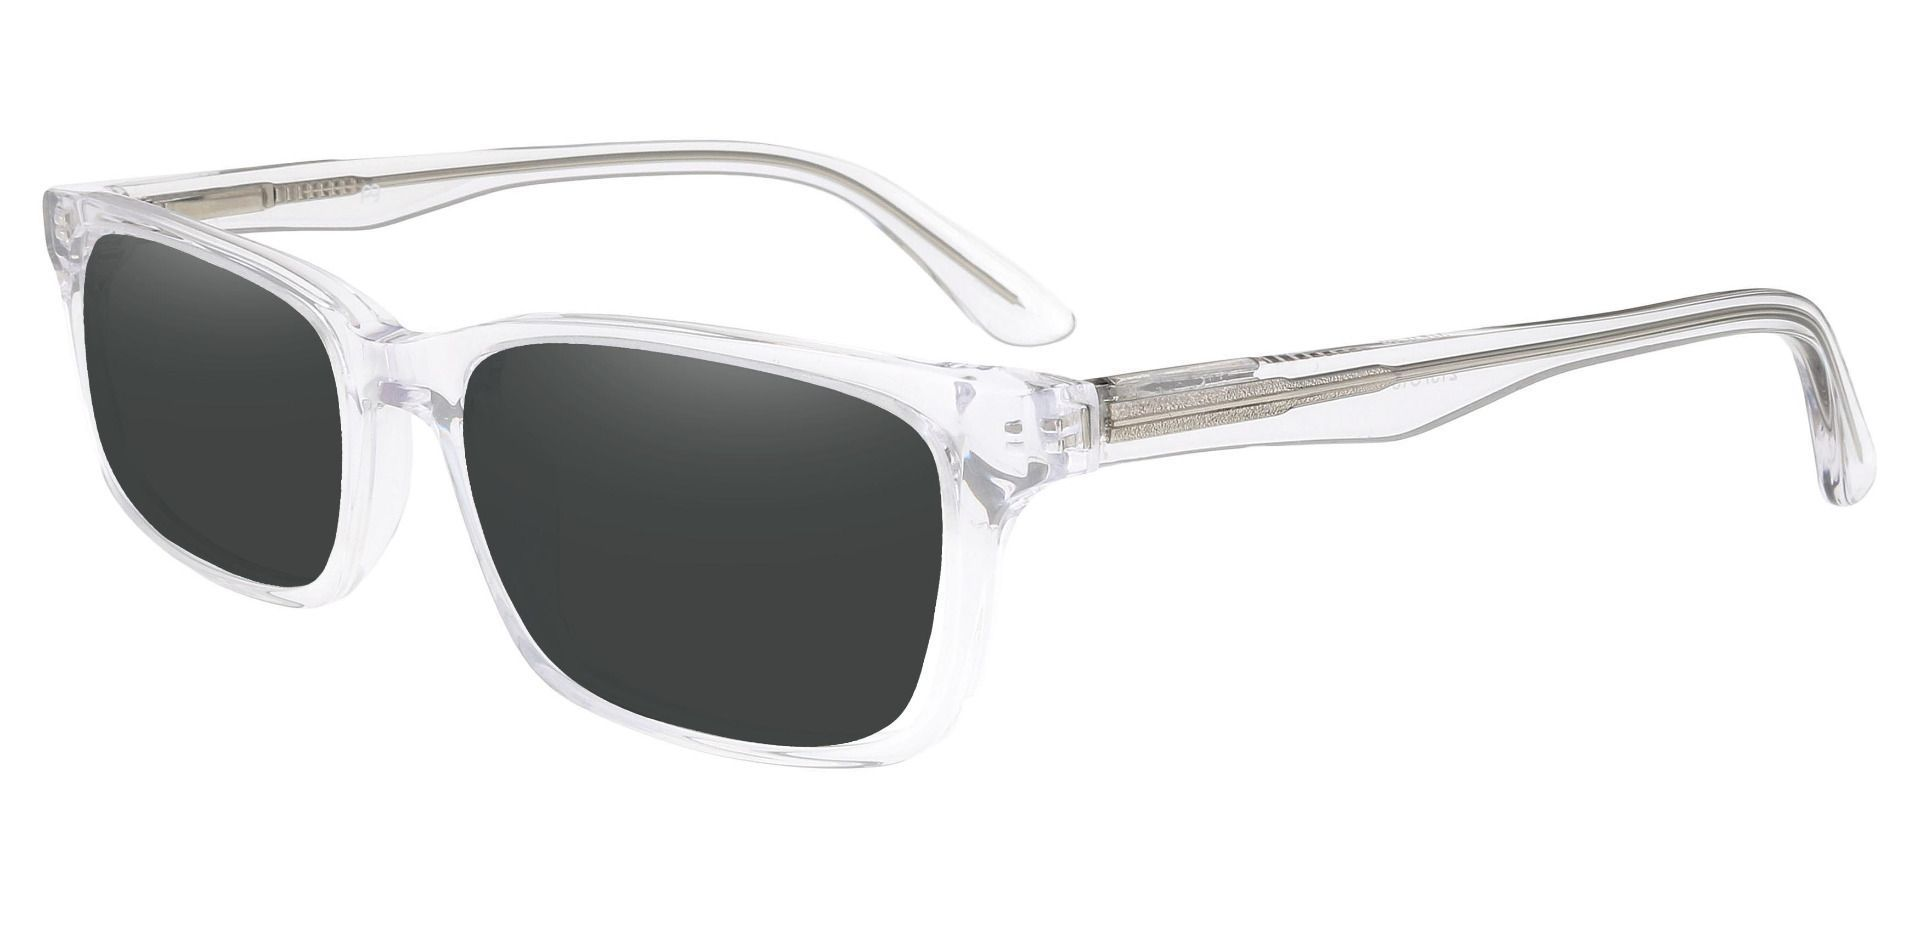 Hendrix Rectangle Lined Bifocal Sunglasses - Clear Frame With Gray Lenses